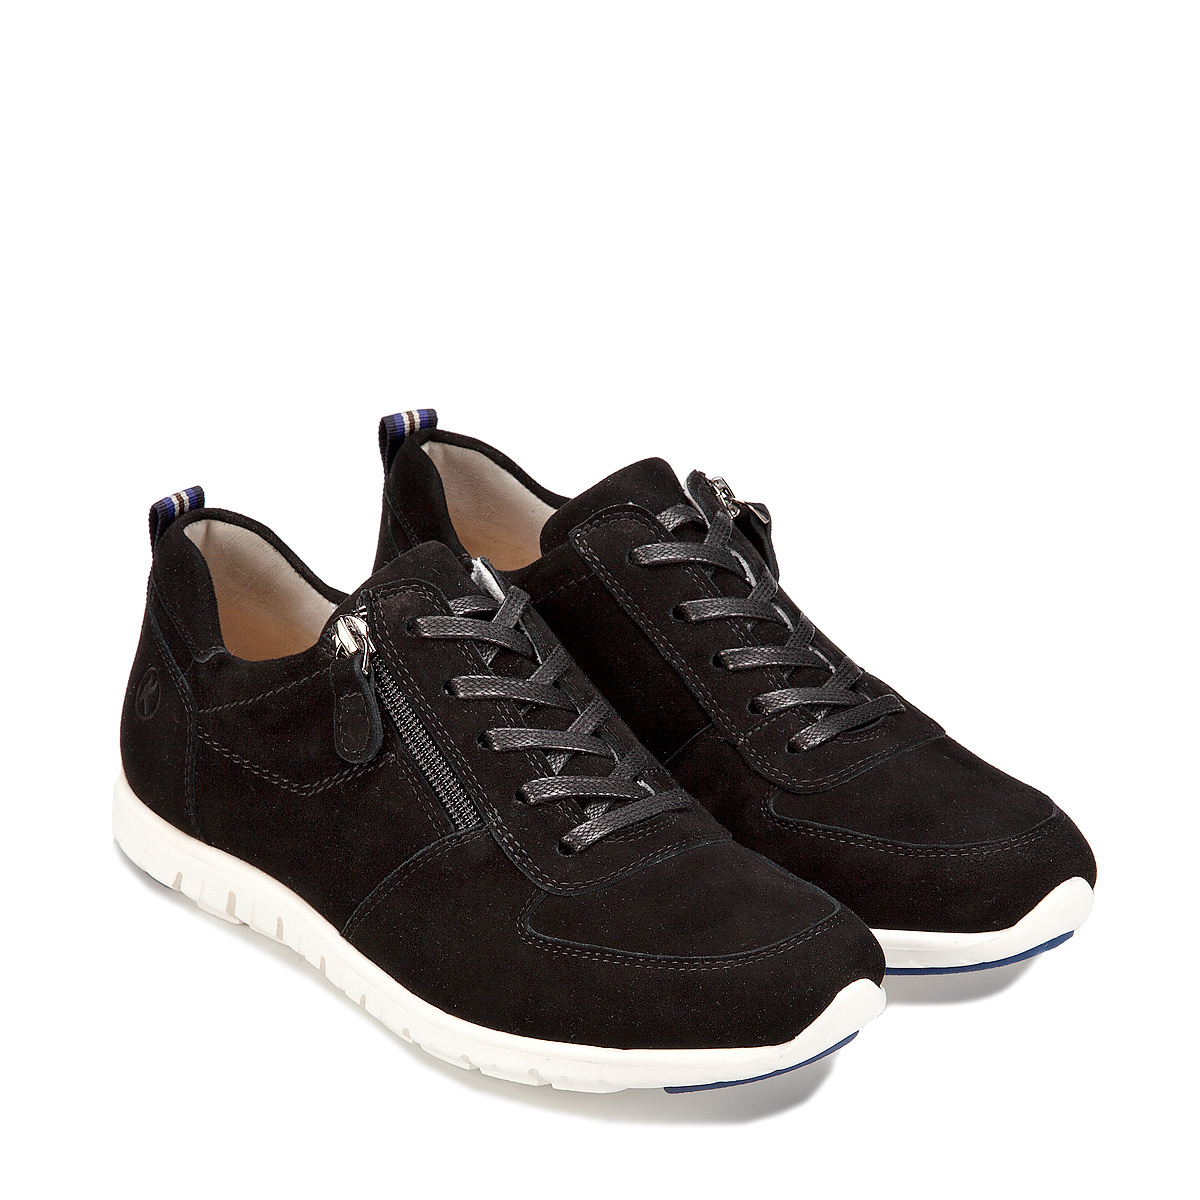 FLEXLIGHT STRIPE SNEAKER